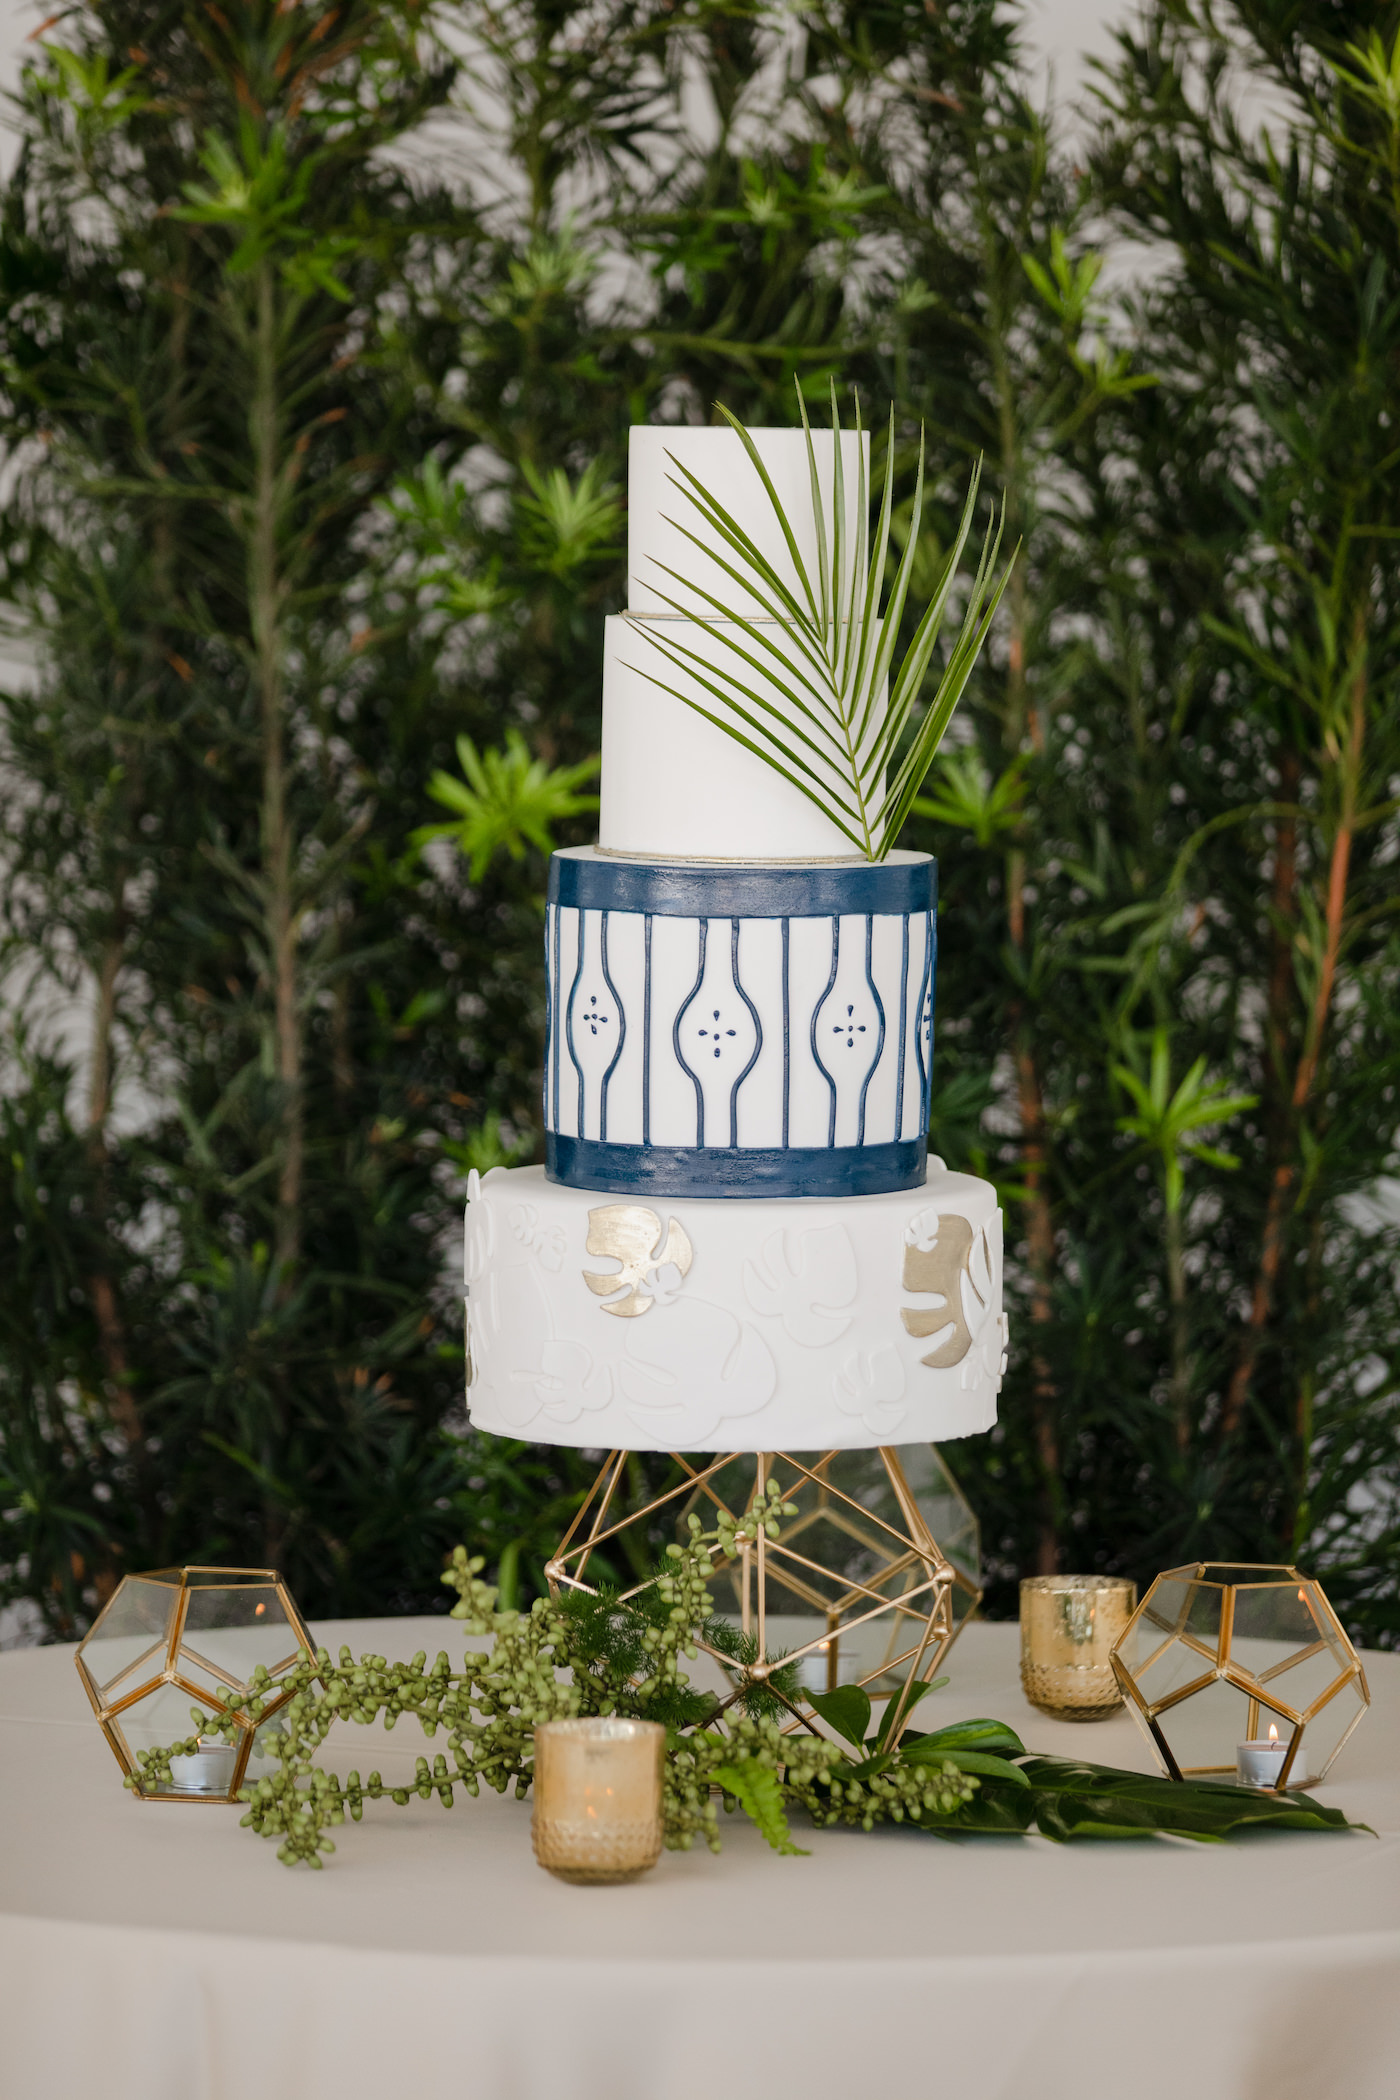 Clearwater Beach Wedding Venue Hilton Clearwater Beach   Modern Tropical Beach Outdoor Wedding Cake Table with Four Tier Gold and Navy Wedding Cake accented with Palm Frond Leaf on Gold Geometric Stand